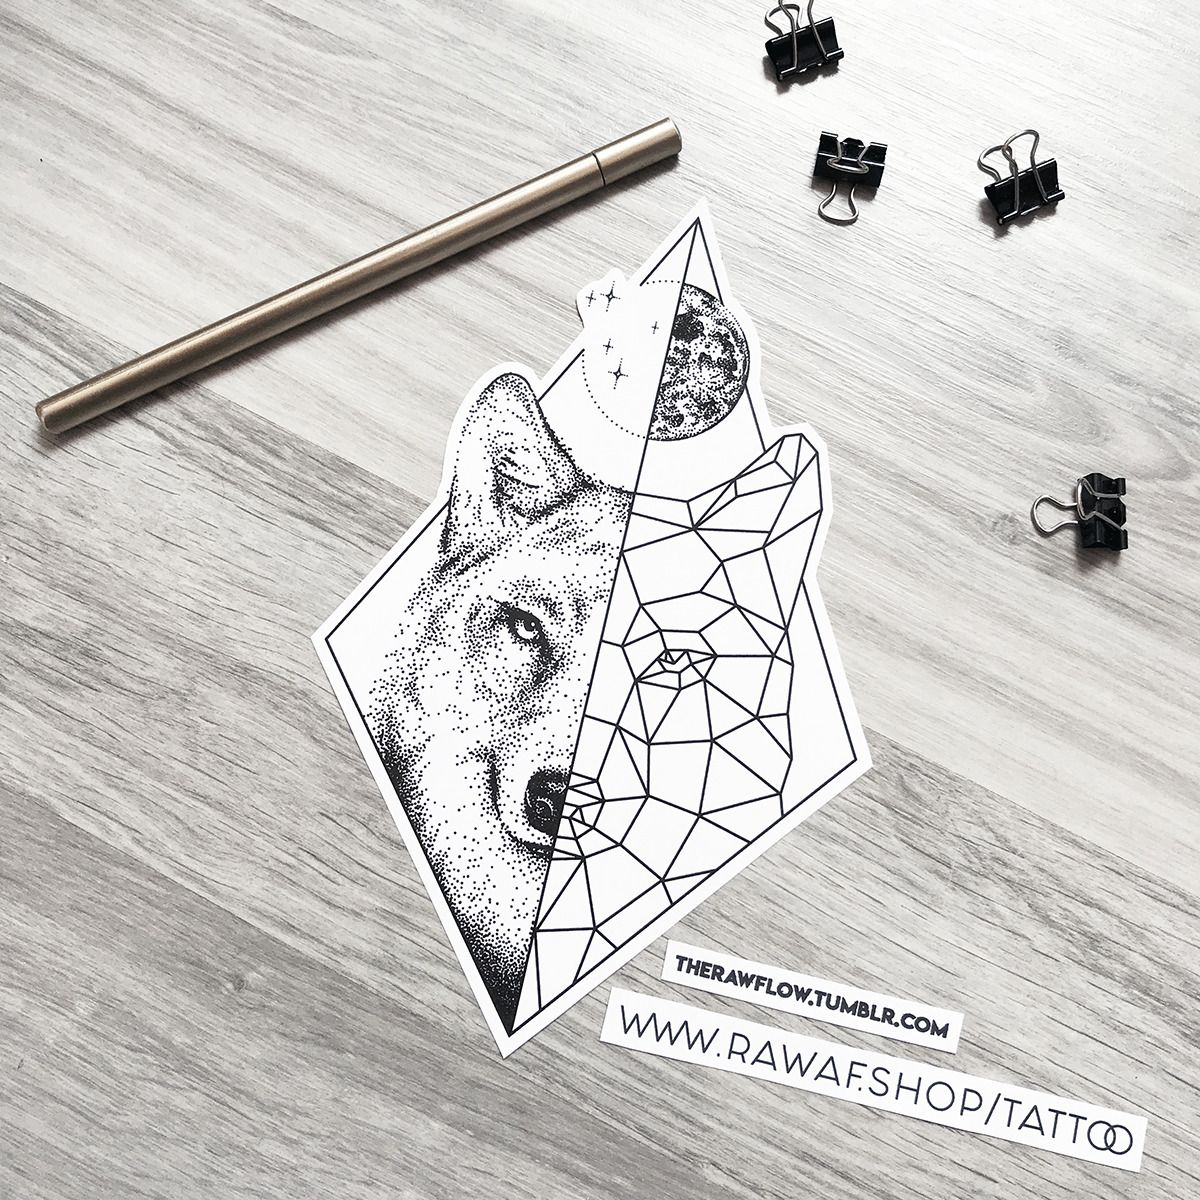 The Good Old Half Half Designs Are Back Dotwork Geometric Wolf With Full Moon Download This Design Wolf And Moon Tattoo Geometric Wolf Tattoo Geometric Wolf